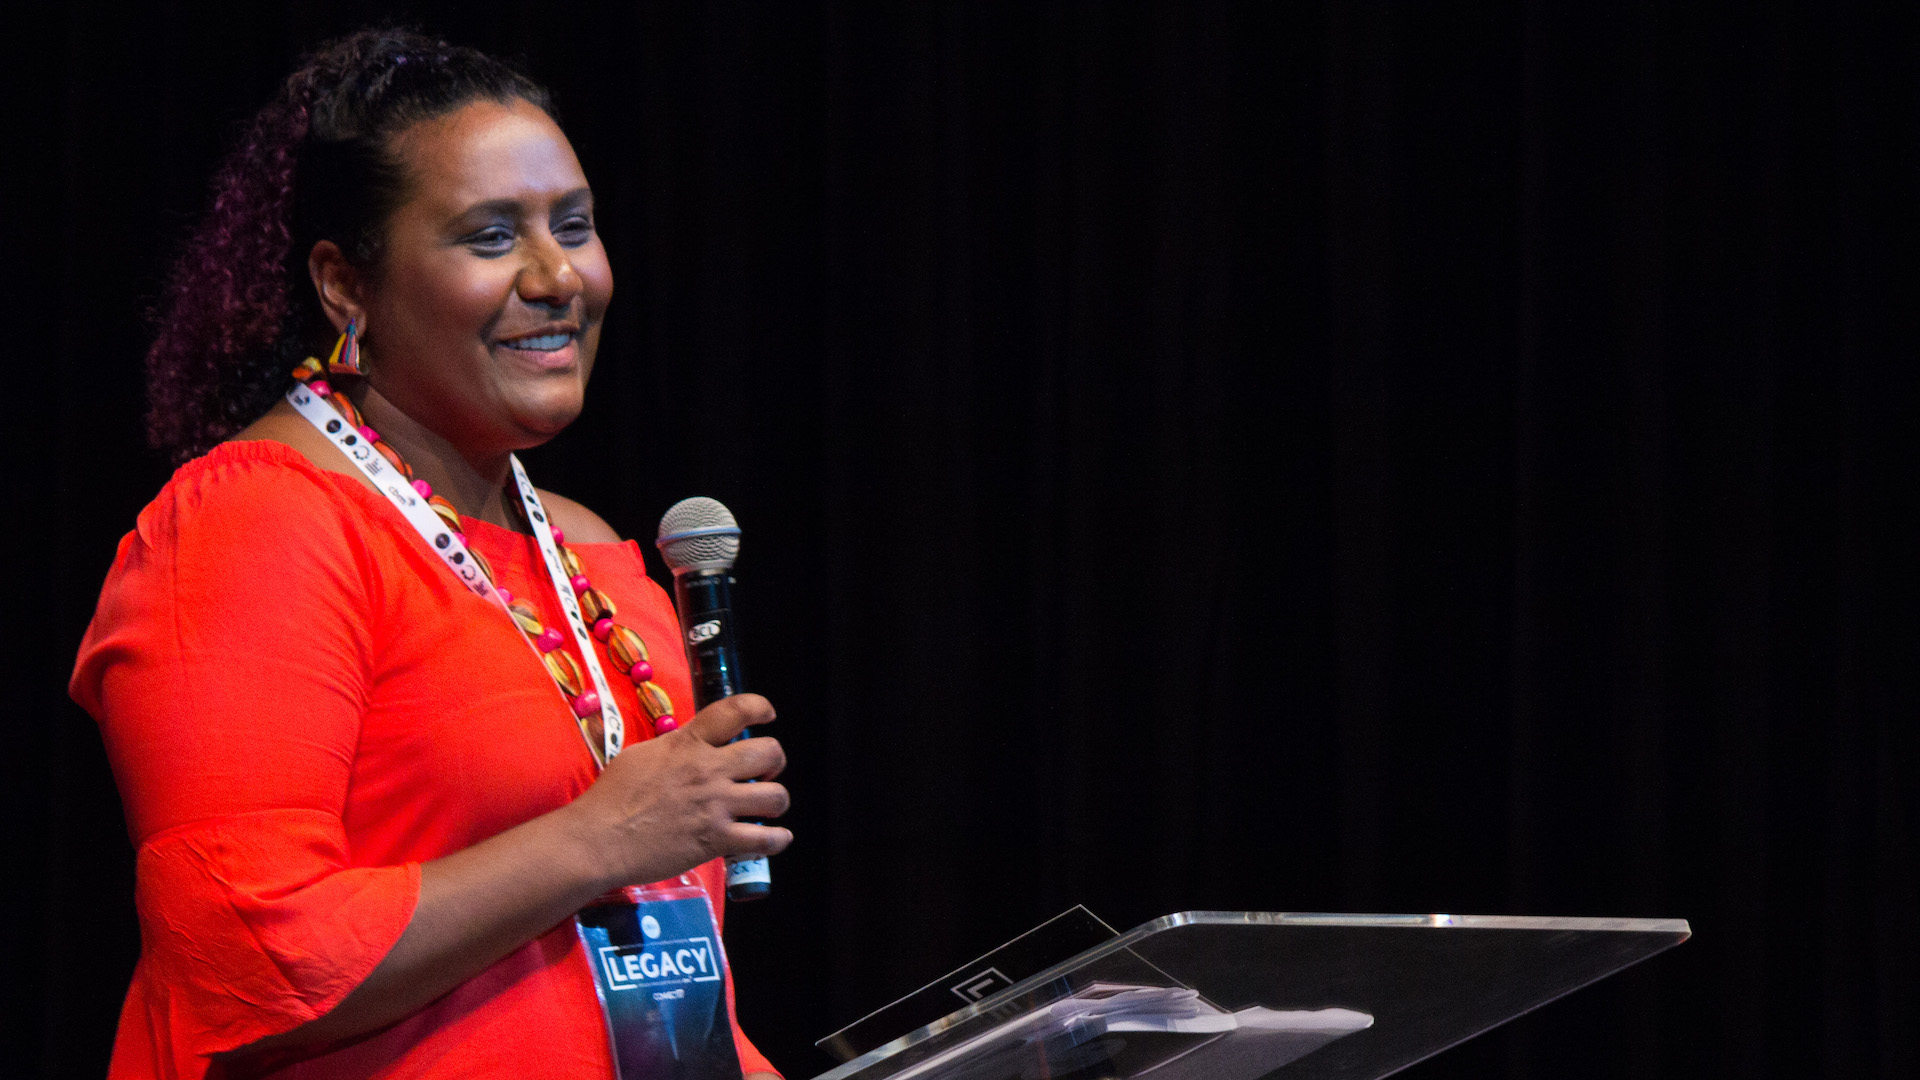 Larissa Minniecon & Tanya Riches: My Generation & My Legacy to the Australian Story [ video ]